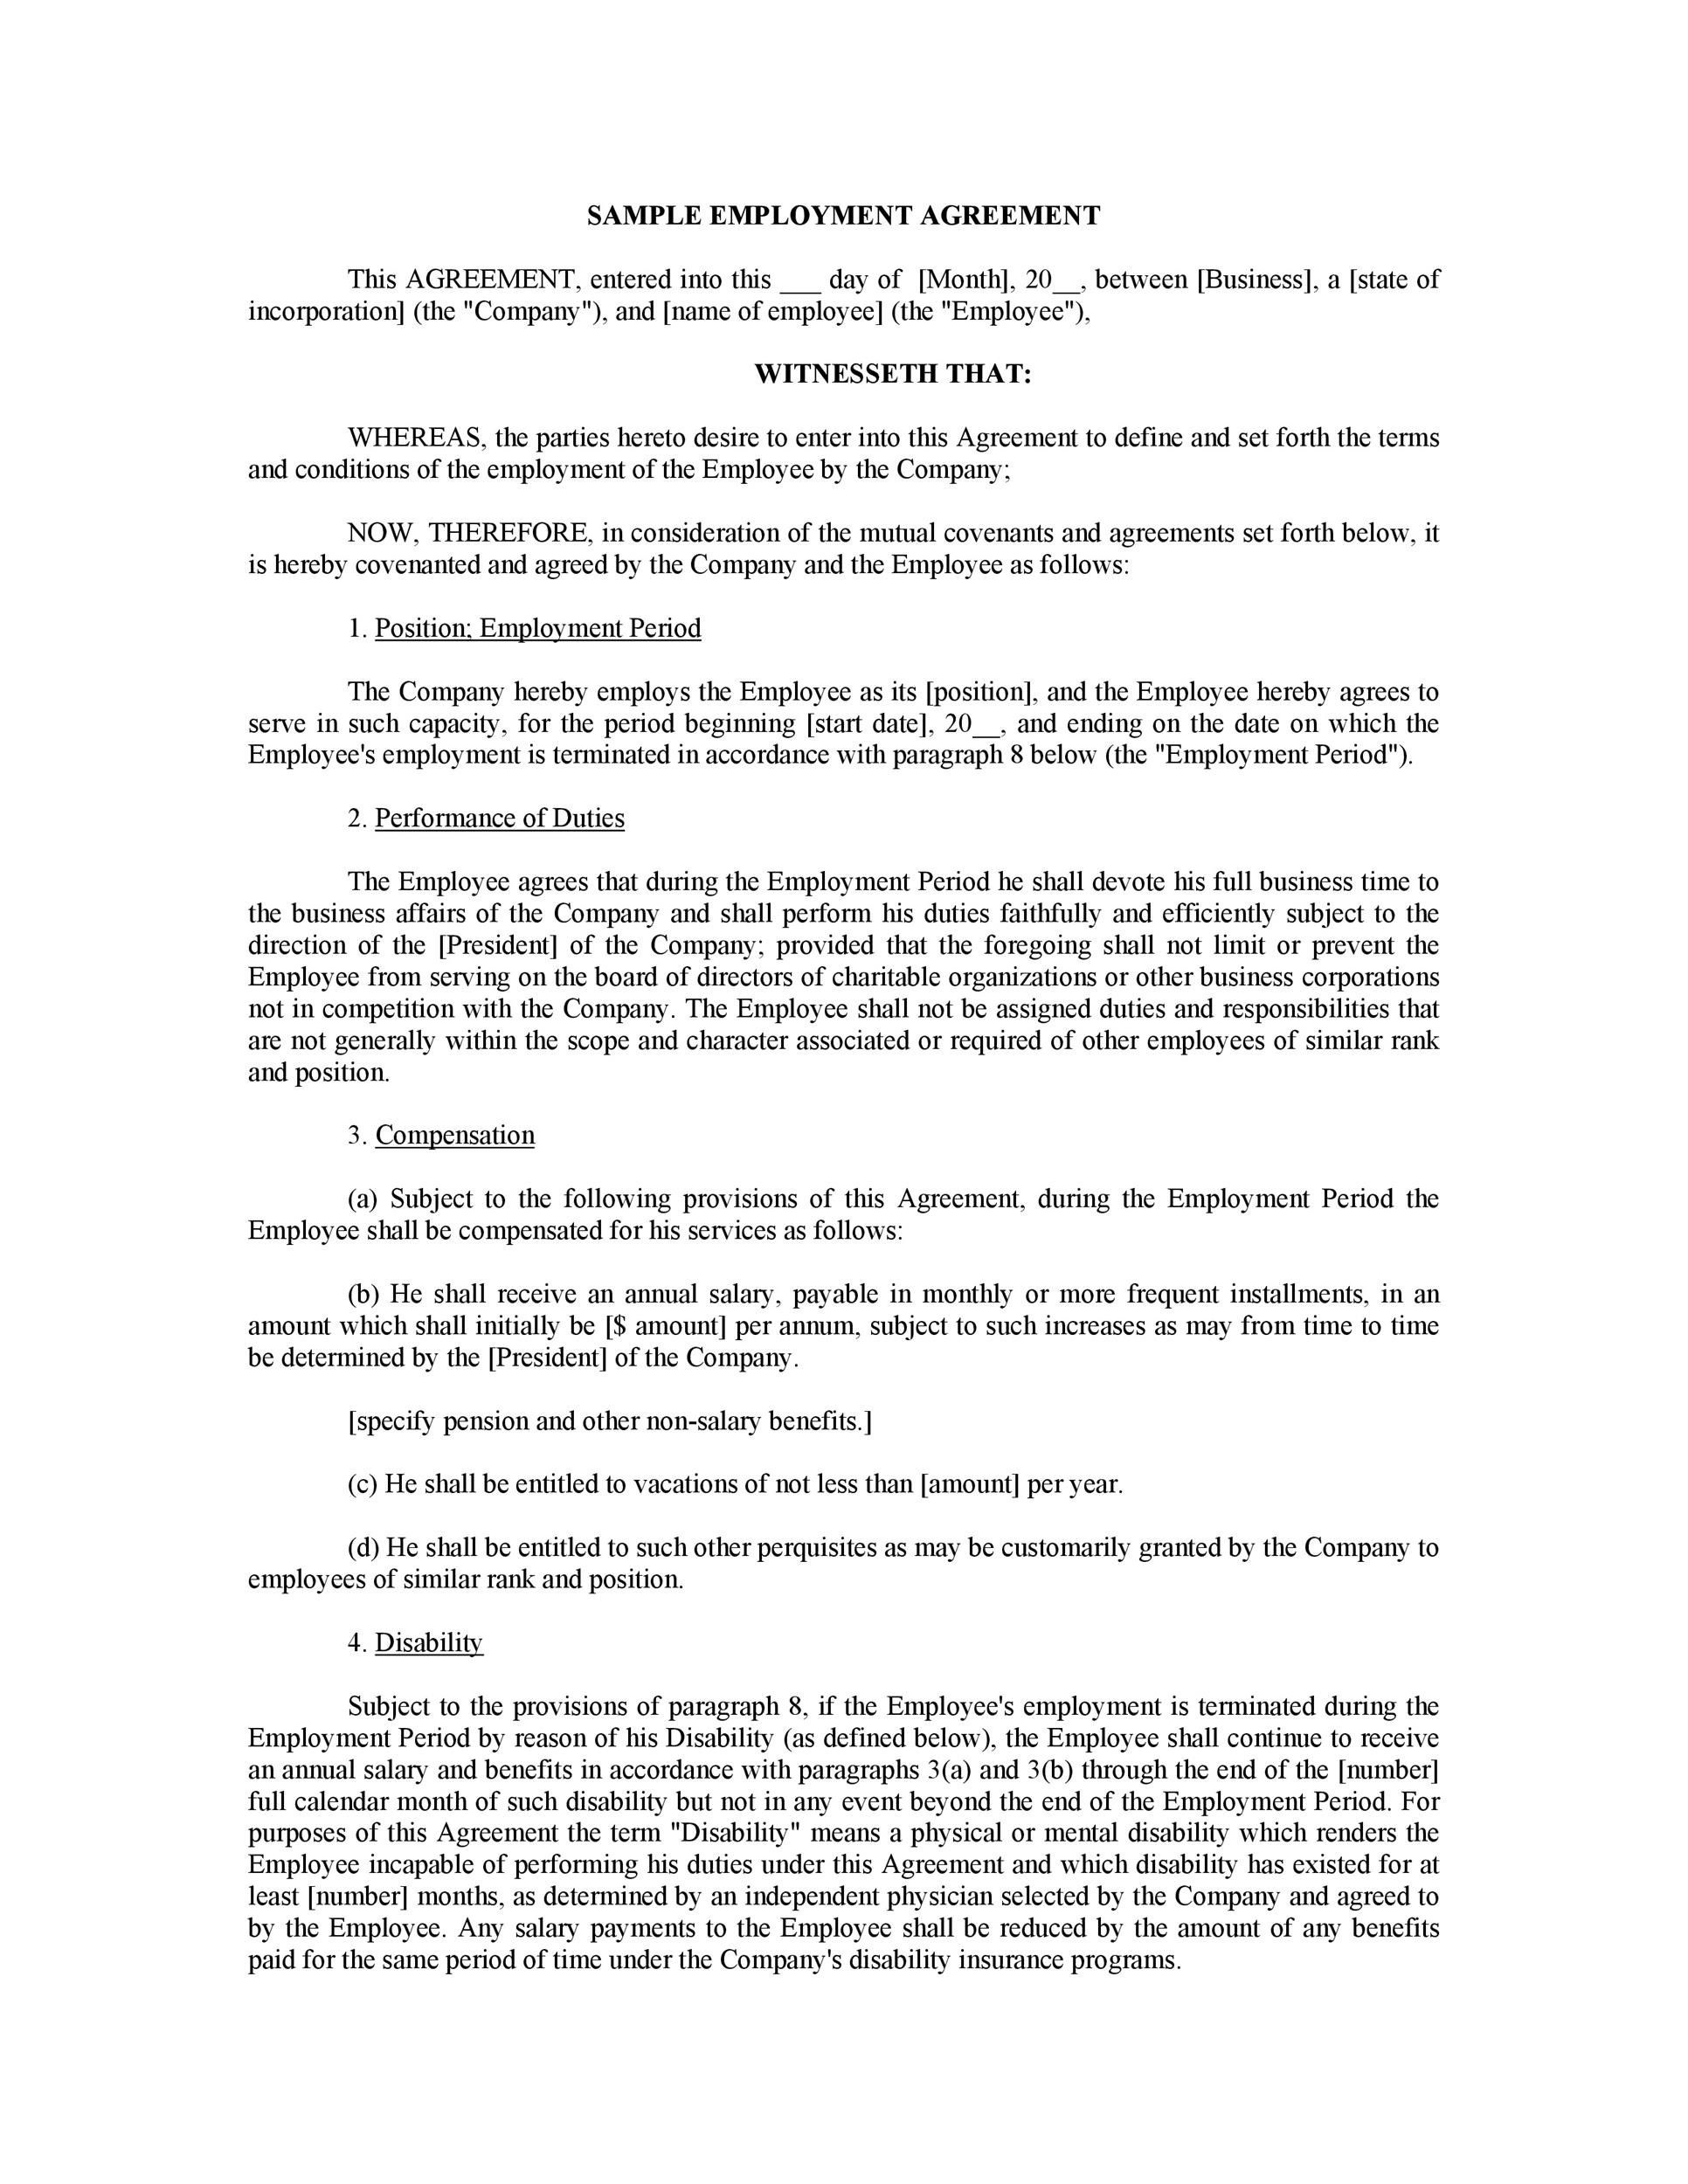 Job Agreement Contract Employment Contract Agreement Sample